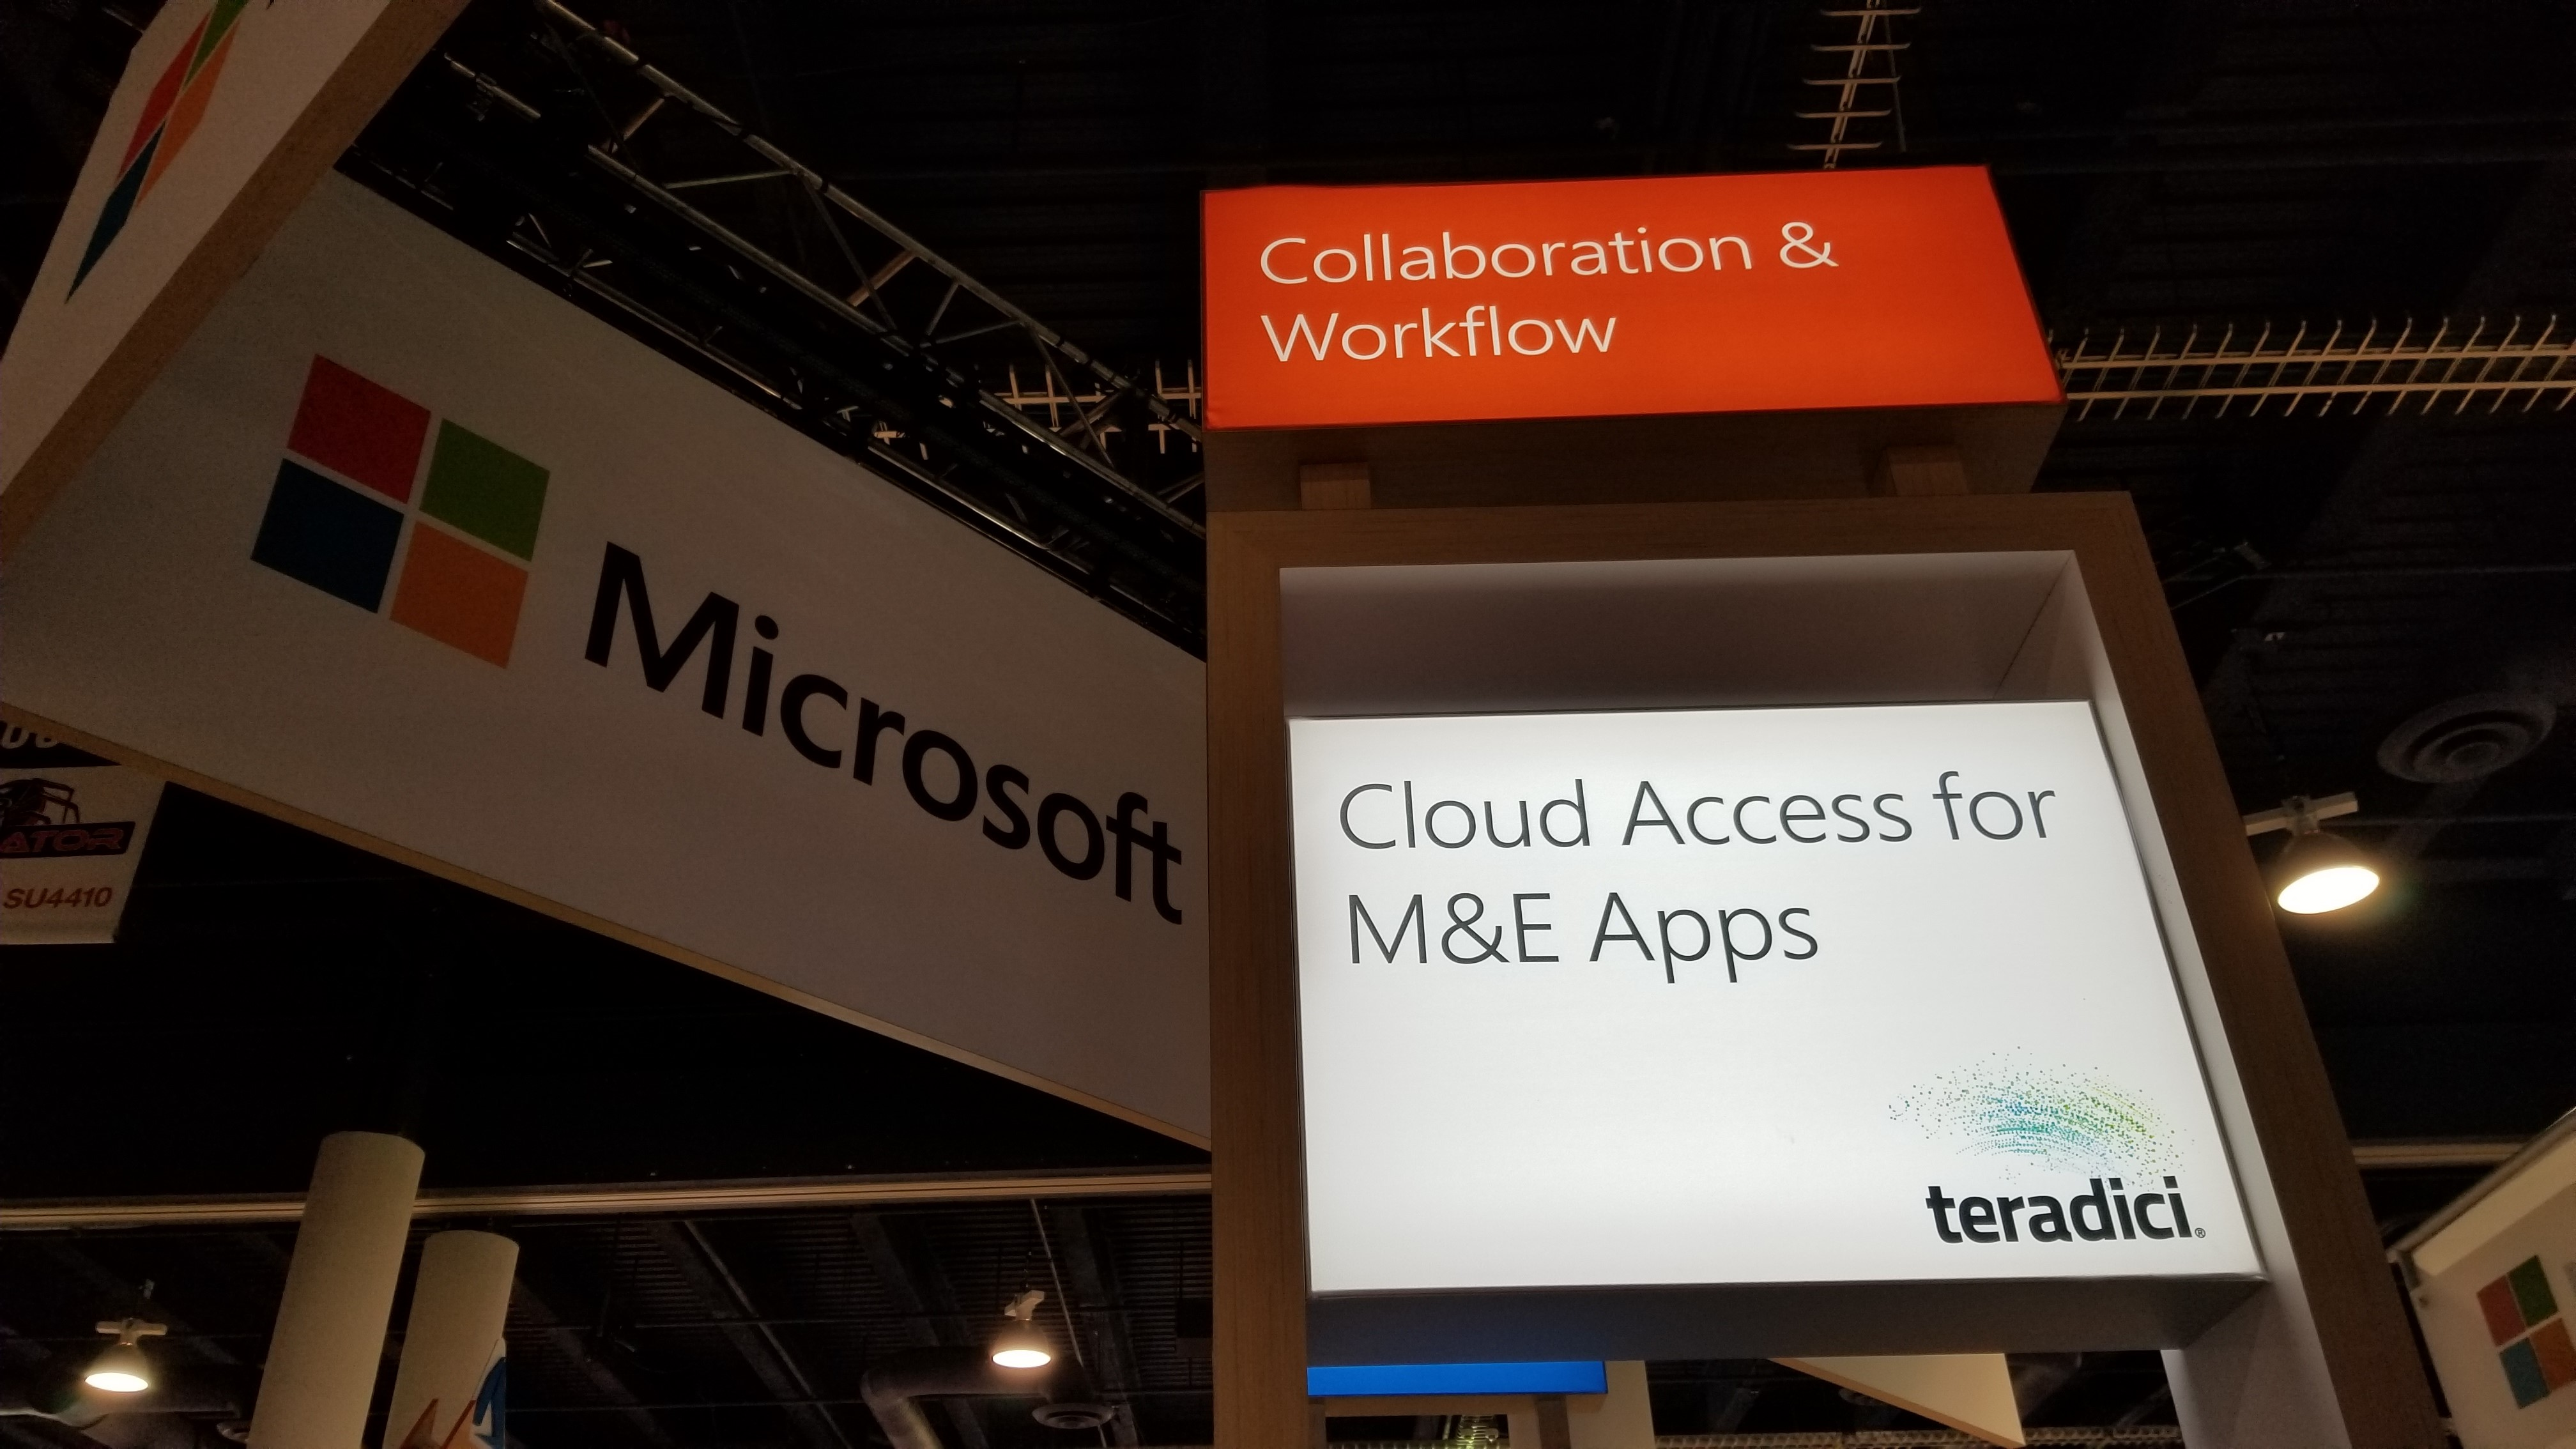 MSFT booth